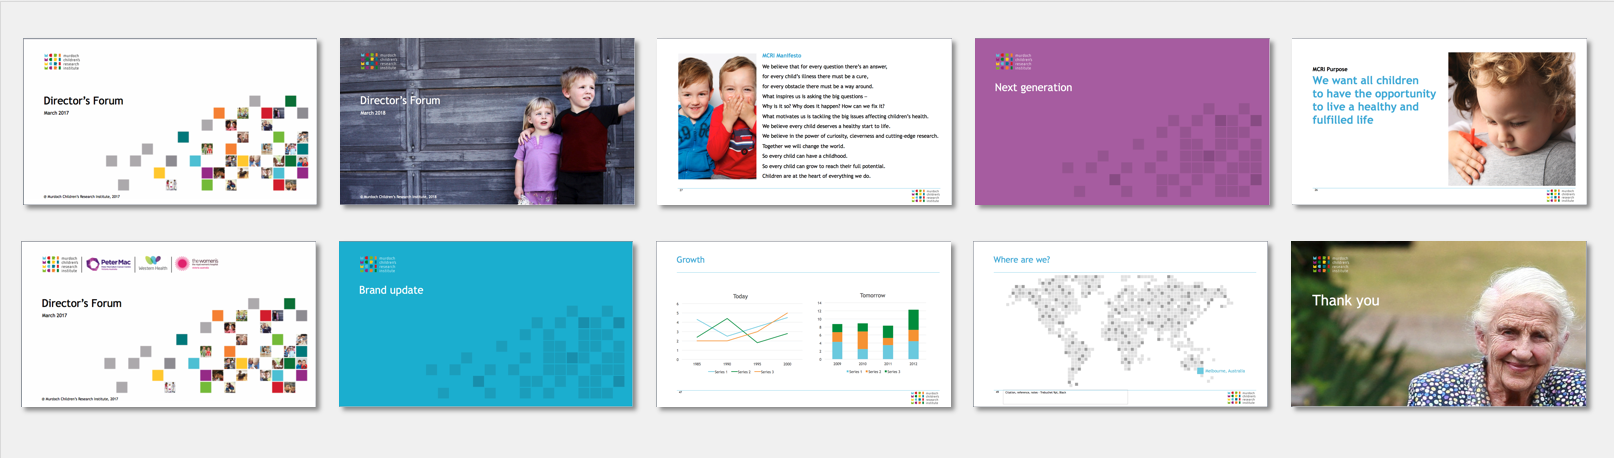 MCRI PowerPoint design and system